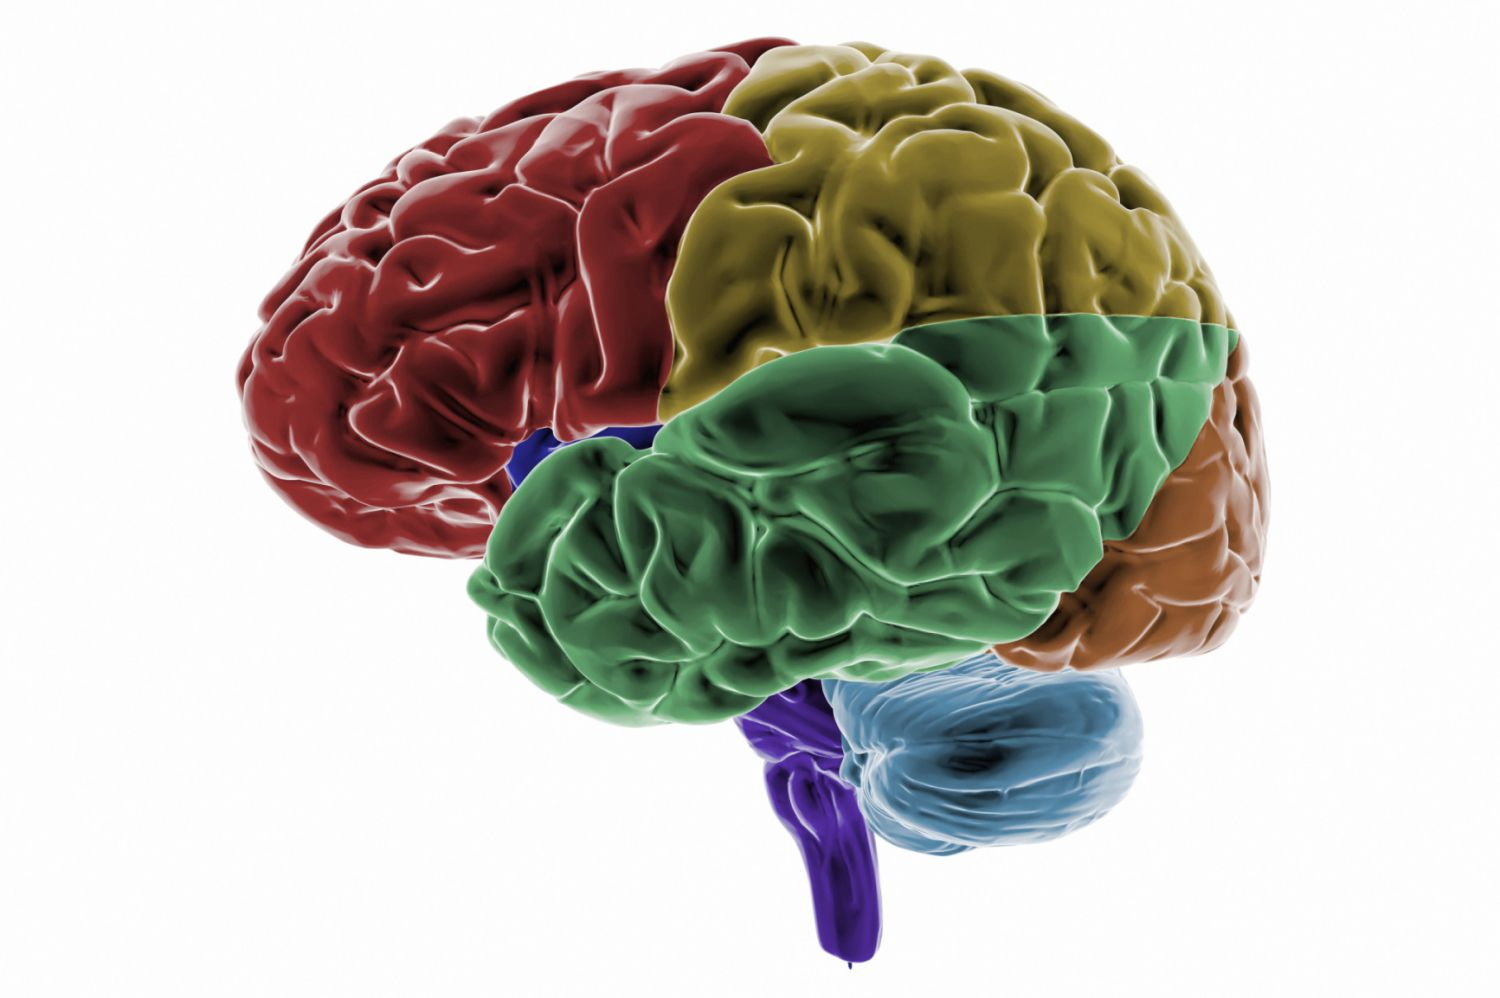 Learn About Temporal Lobes In The Cerebral Cortex